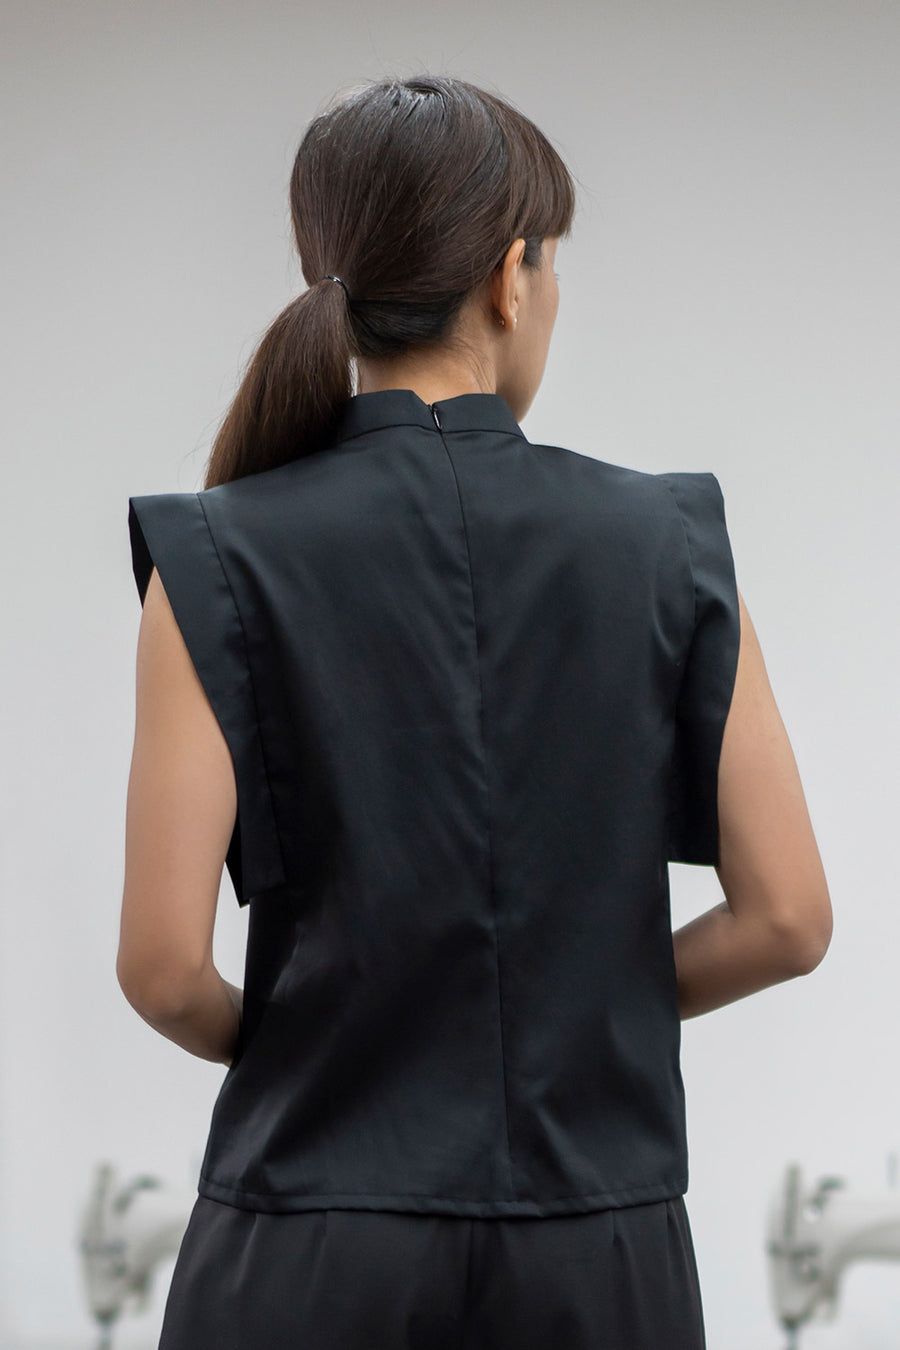 Black sleeveless top with mandarin collar